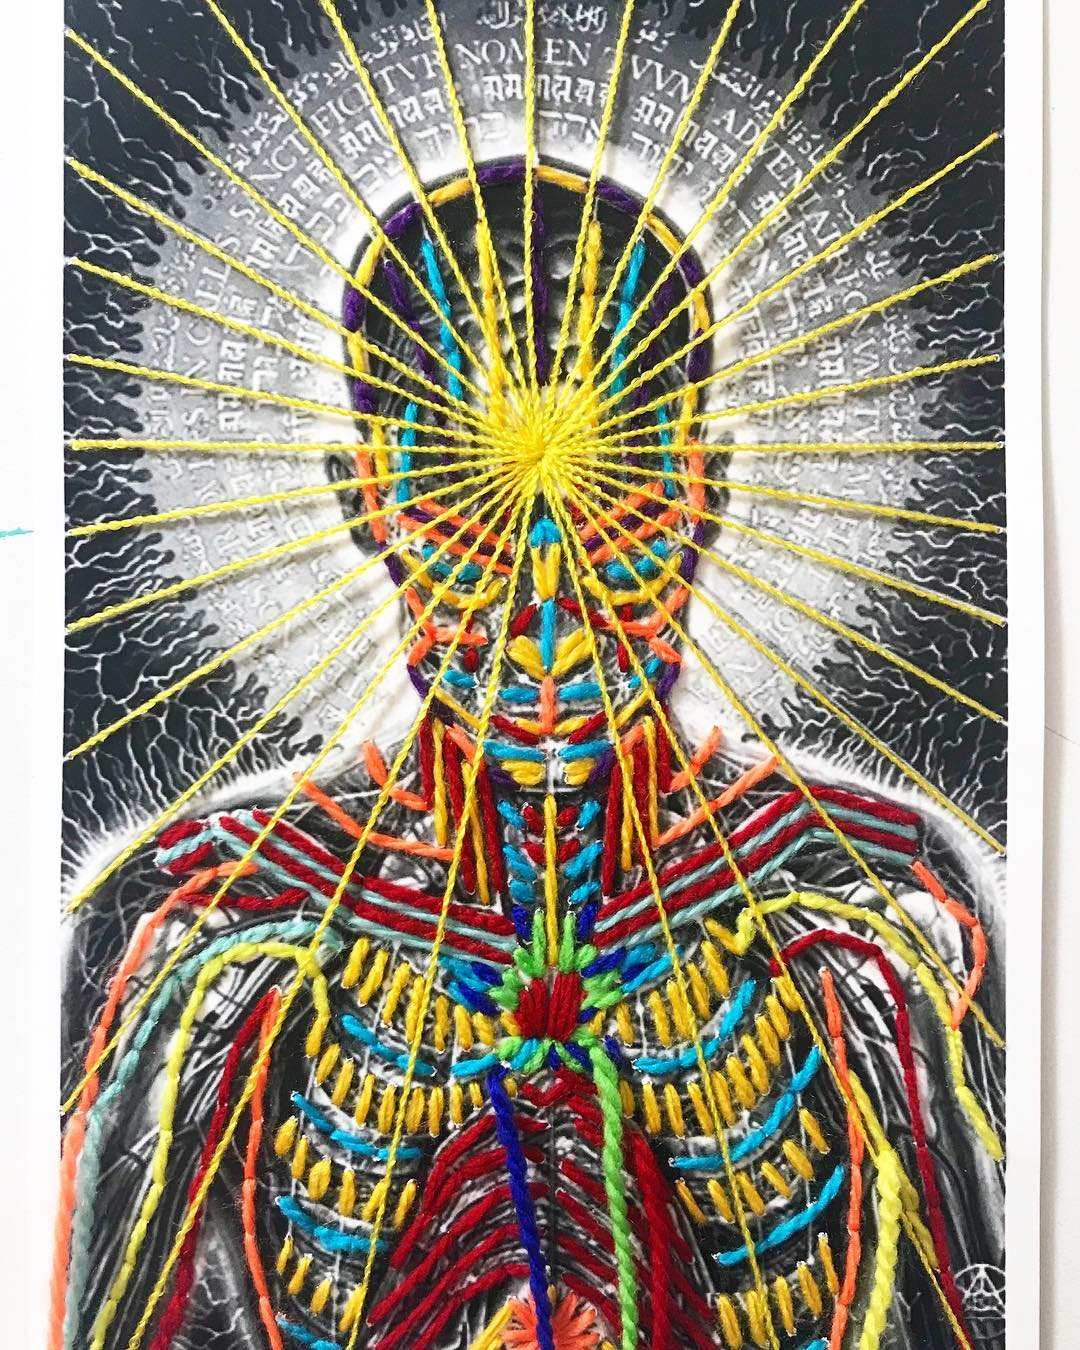 'Praying' By Alex Grey, Embroidery By Victoria Villasana